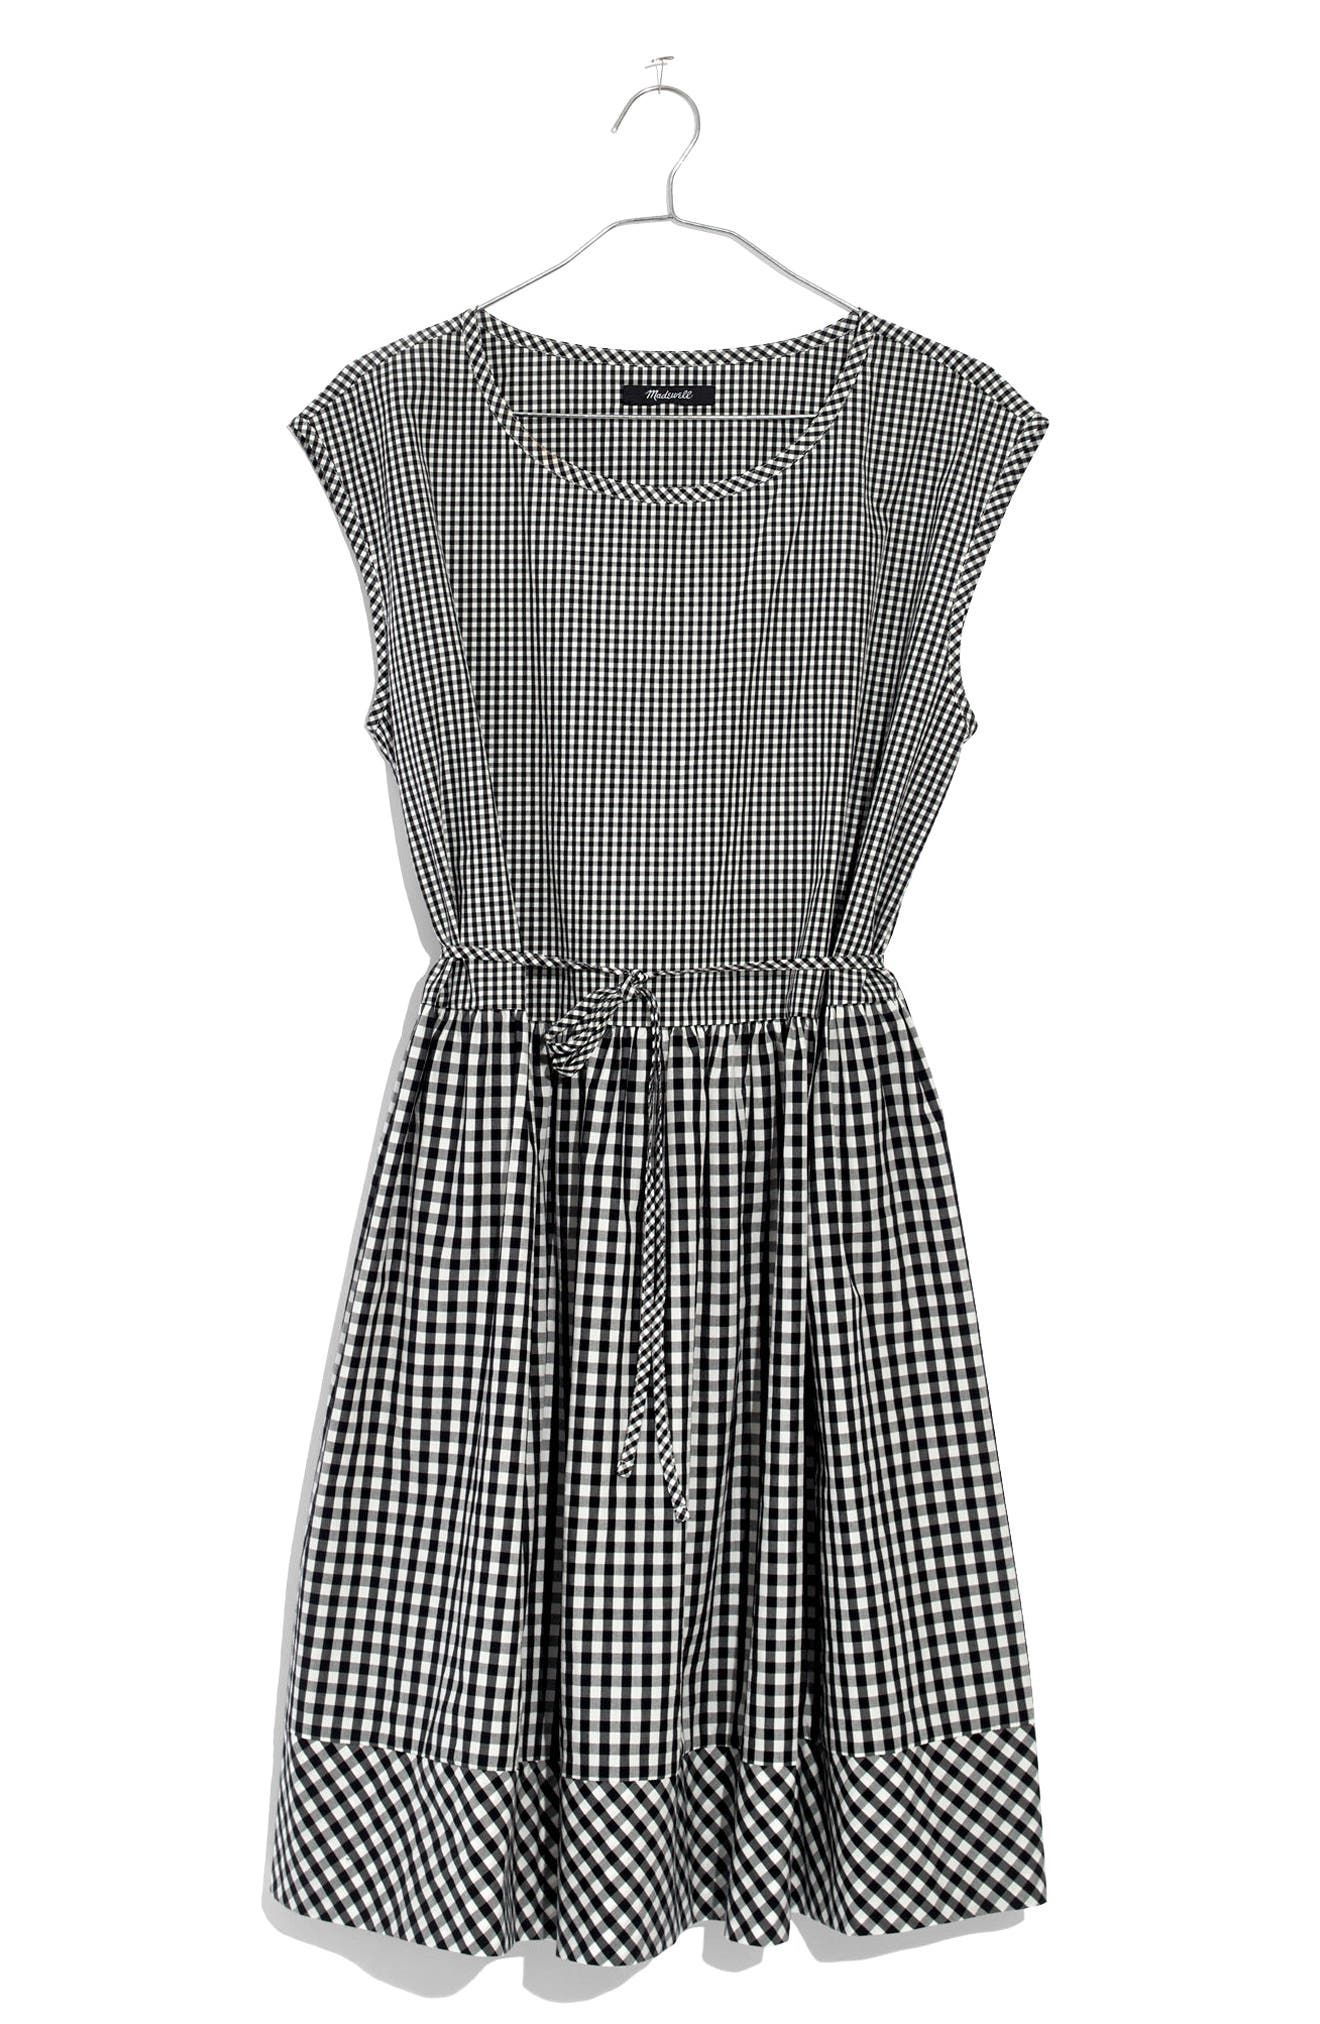 Gingham Tie Back Minidress,                             Alternate thumbnail 4, color,                             009